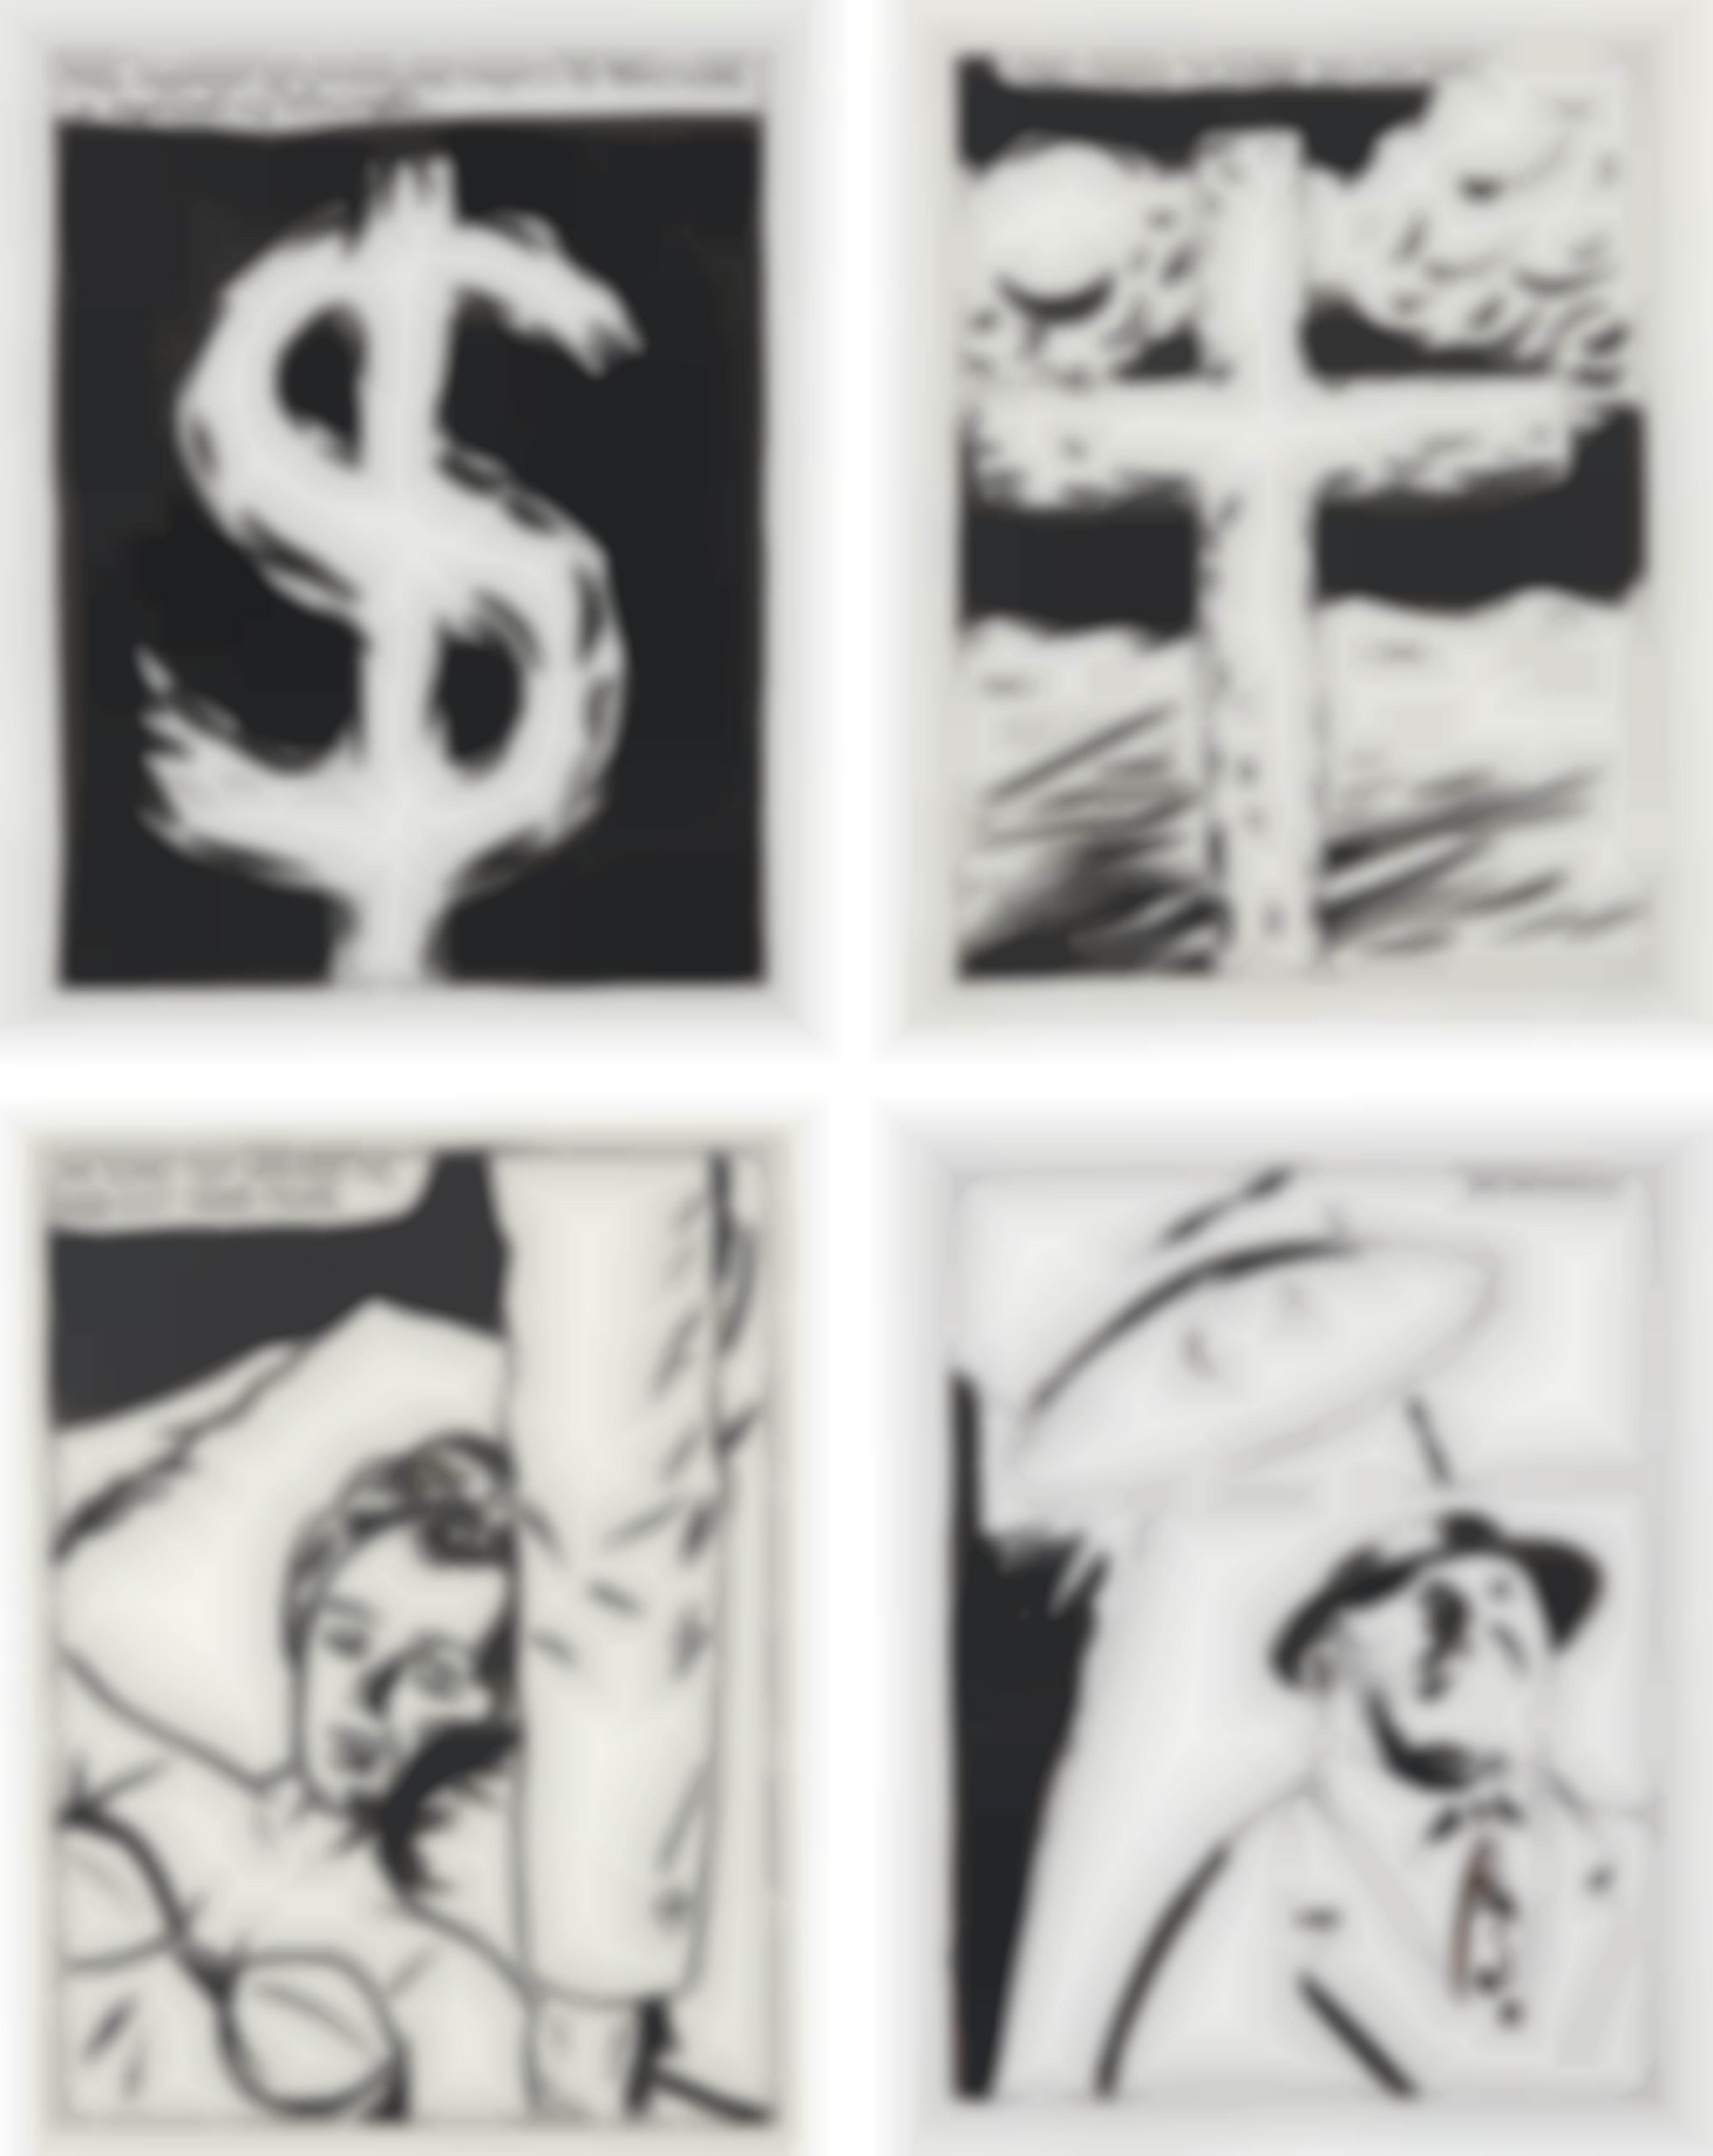 Raymond Pettibon-Four Works: (i) The Symbol of Weakness Begins To Turn Into A Symbol of Strength (ii) I'm Glad You Walked In, and Not Your Twin (iii) This Cross Is Made Of Fat (iv) Dr. Kinsey-2001